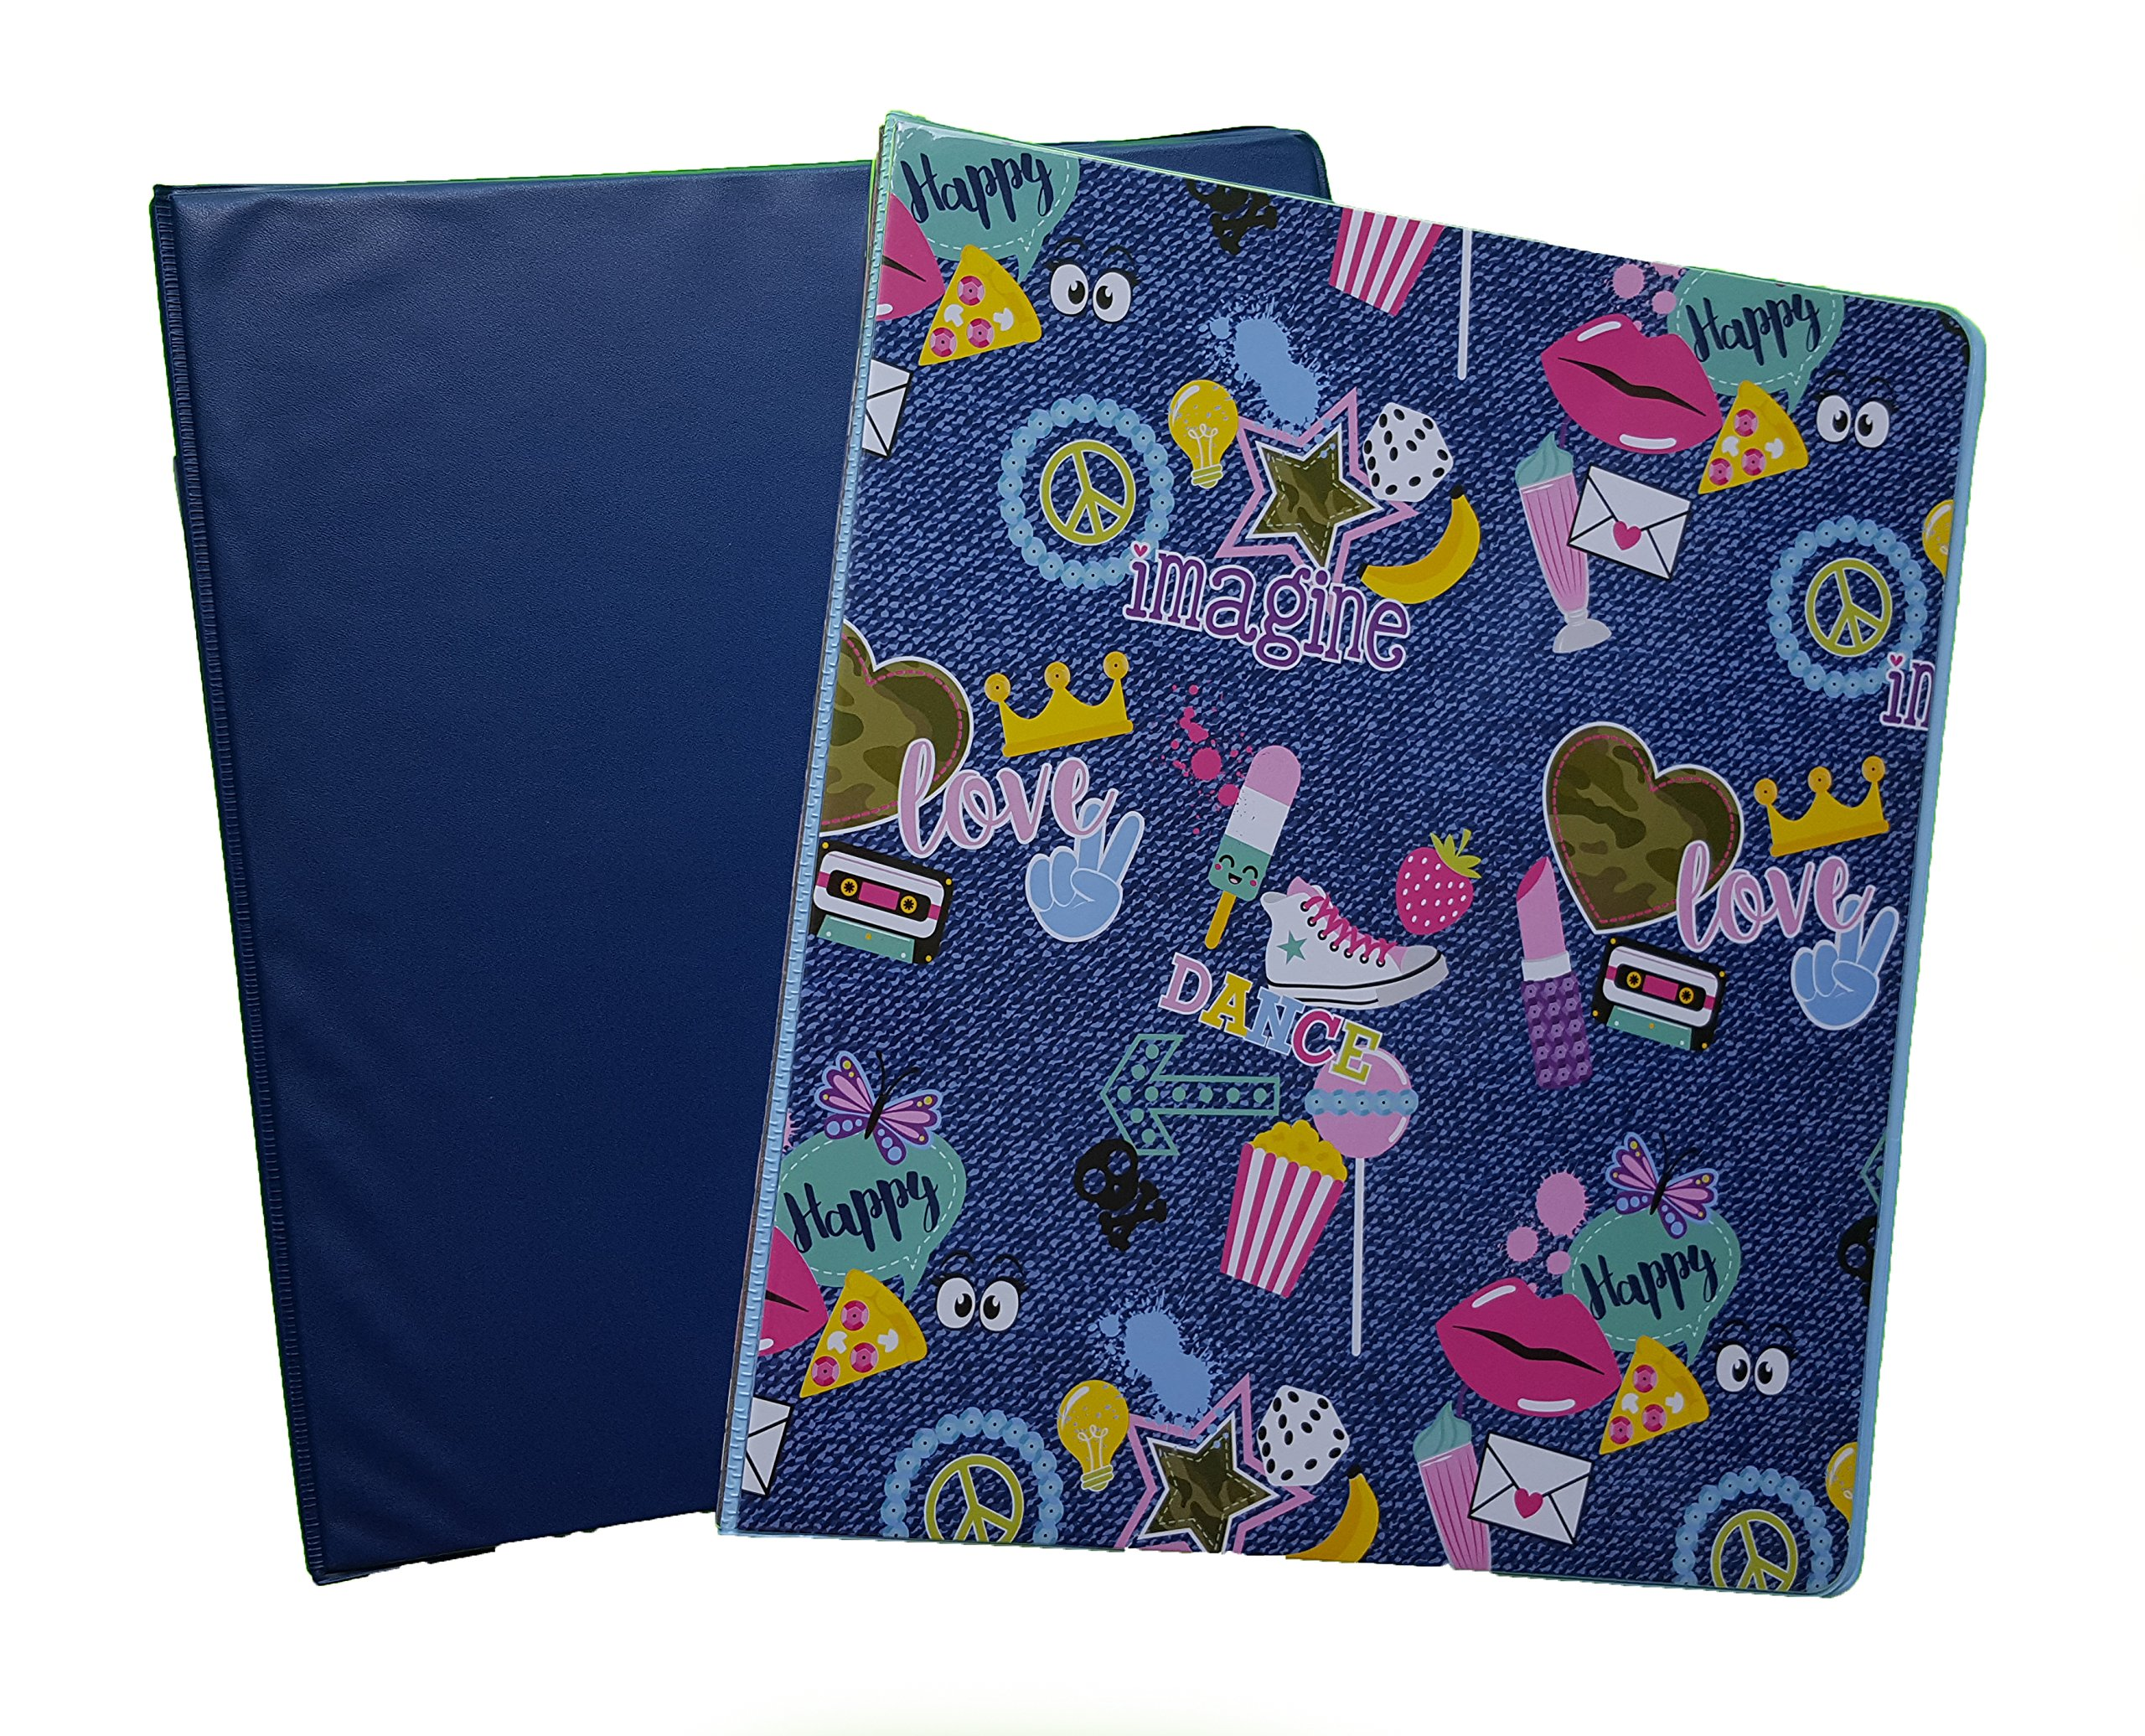 Fashion Colored Couture Vinyl 3-Ring Binders, 1'' Girls, Set of 2 (Navy)